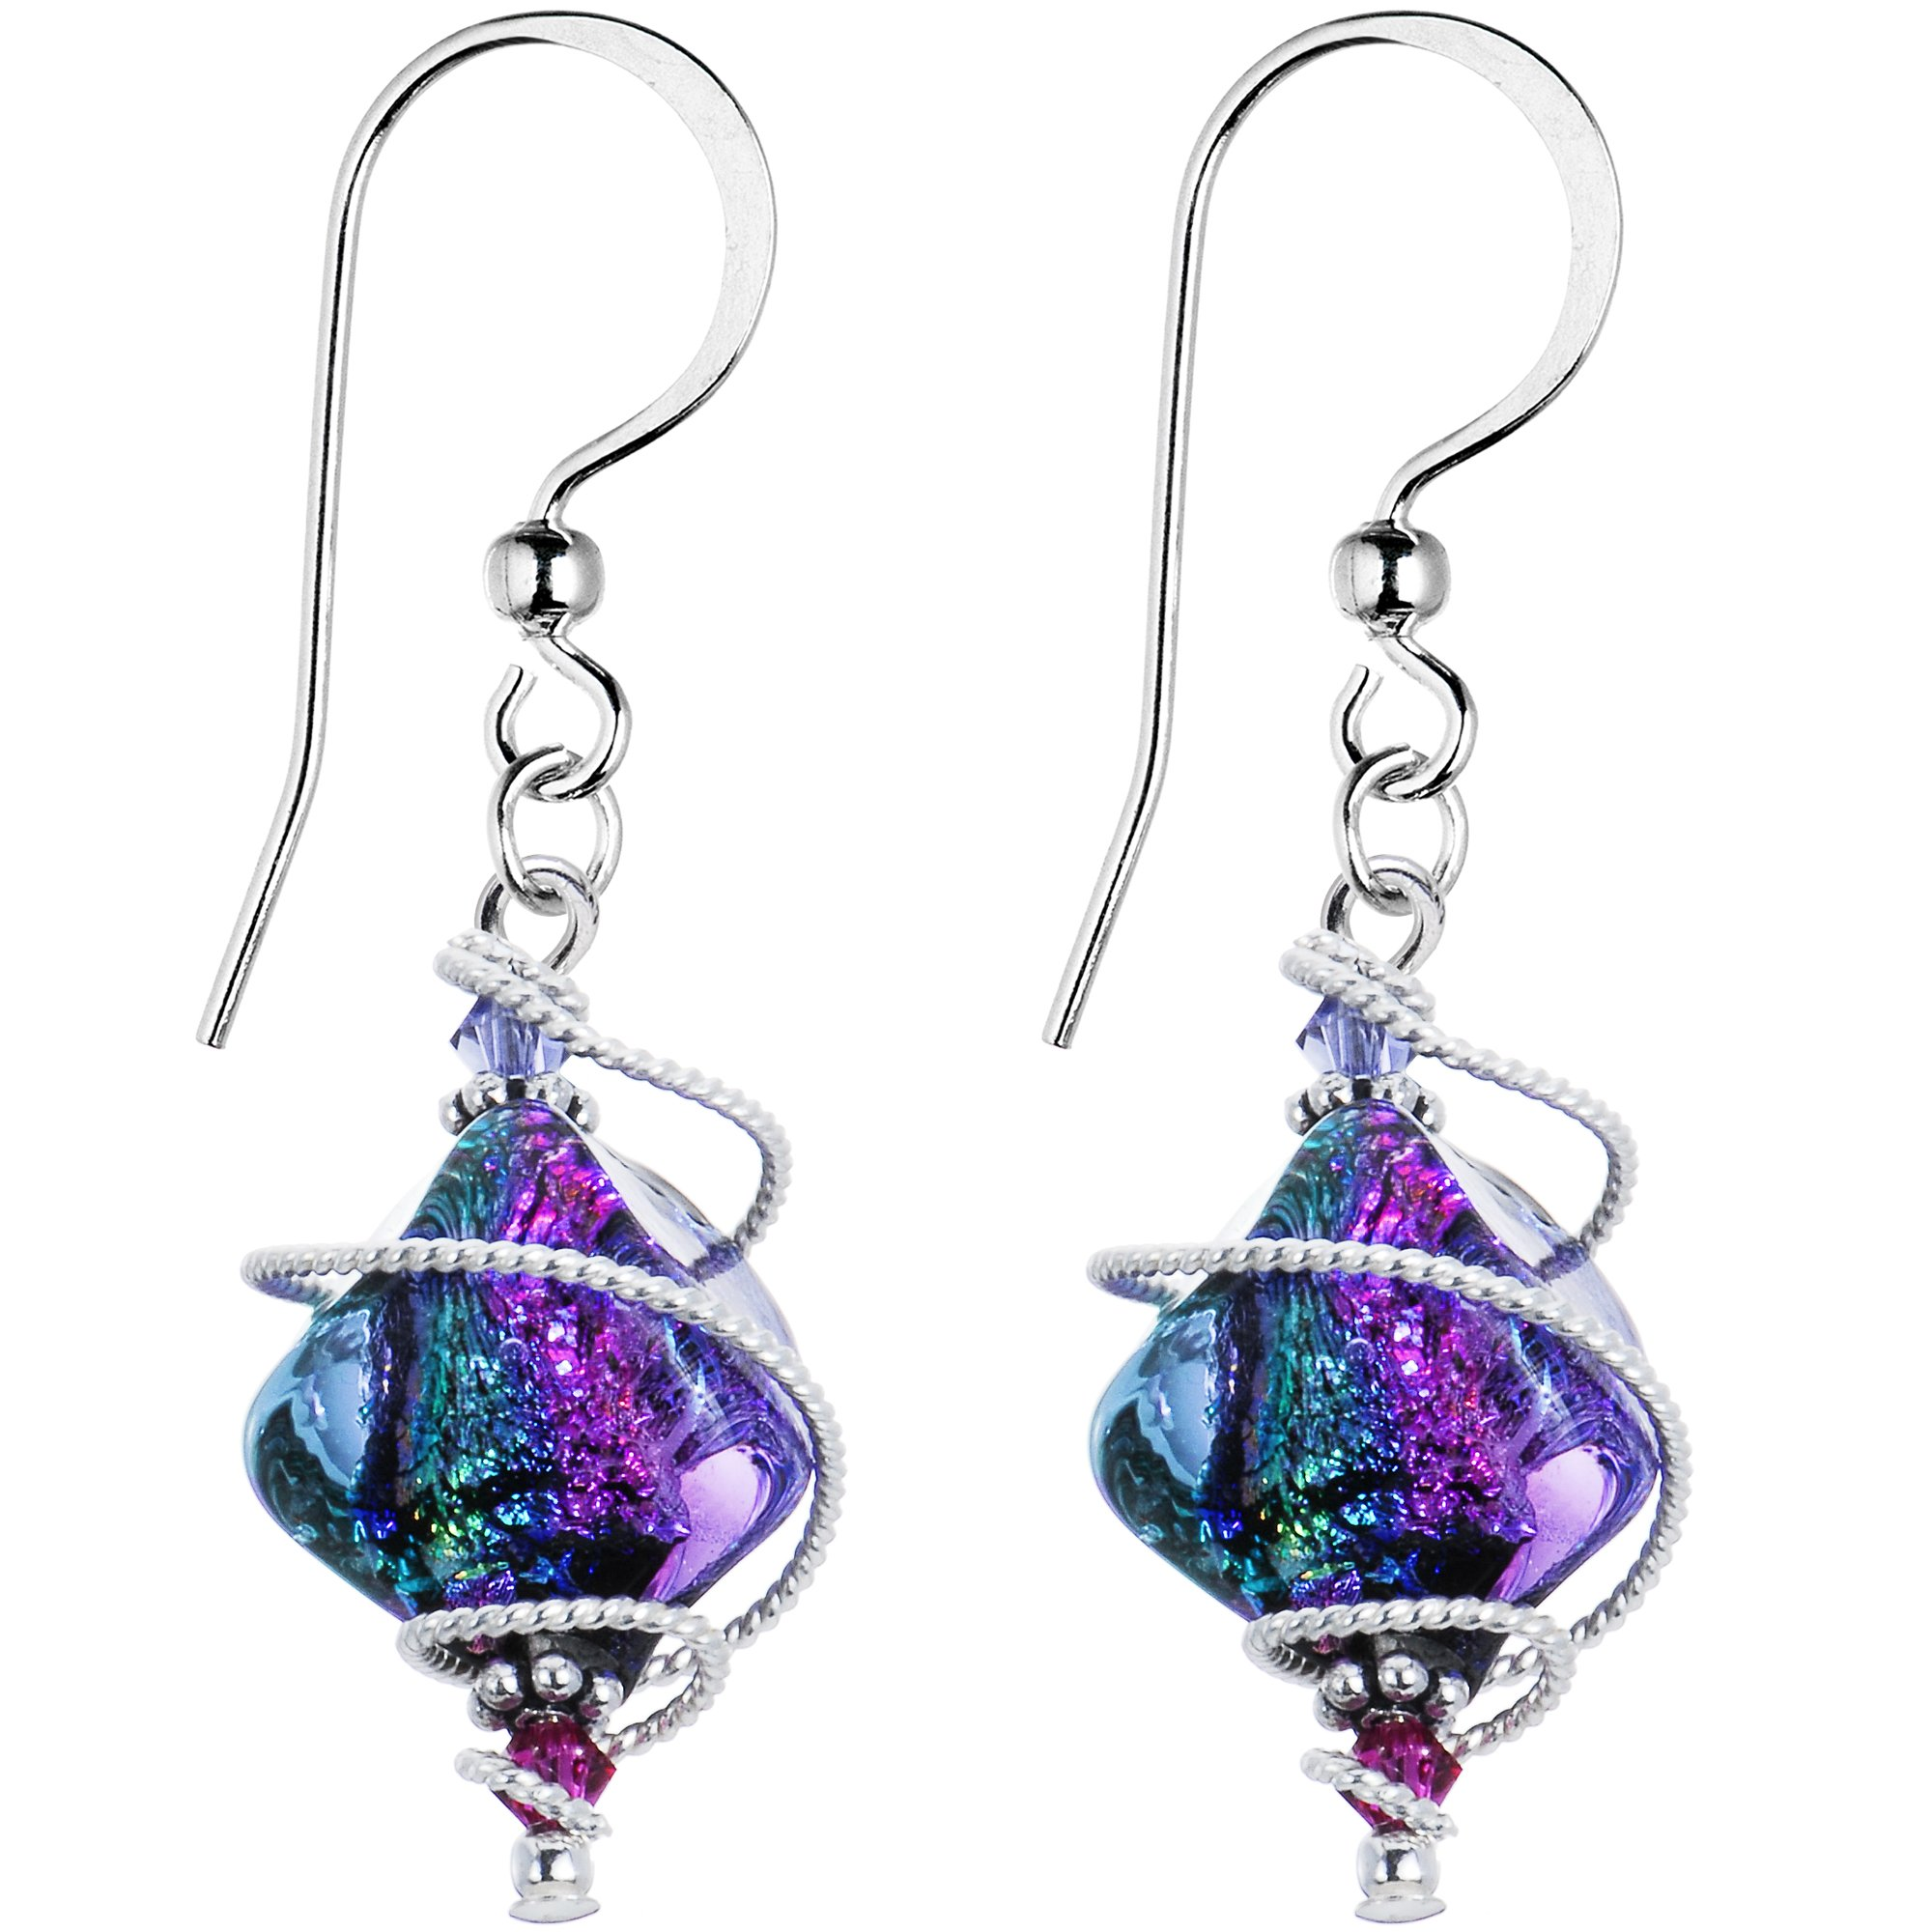 Body Candy Handcrafted 925 Silver Purple Dichroic Drop Dangle Earrings Created with Swarovski Crystals by Body Candy